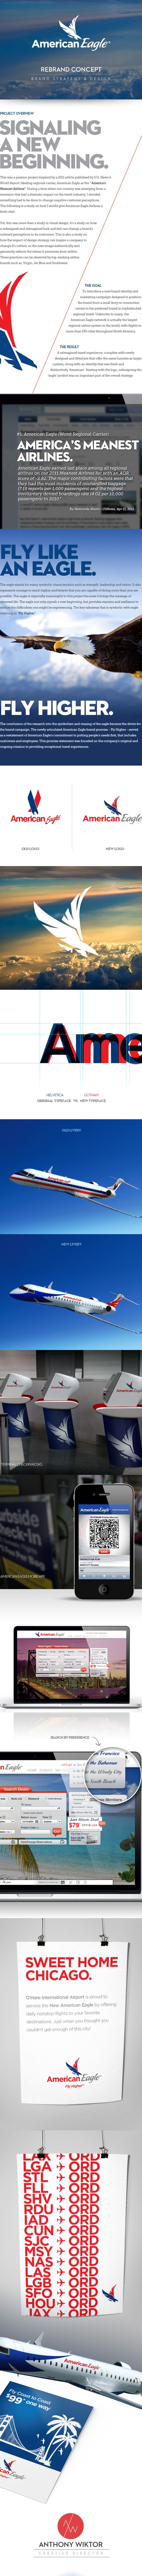 American Eagle Airlines on Behance